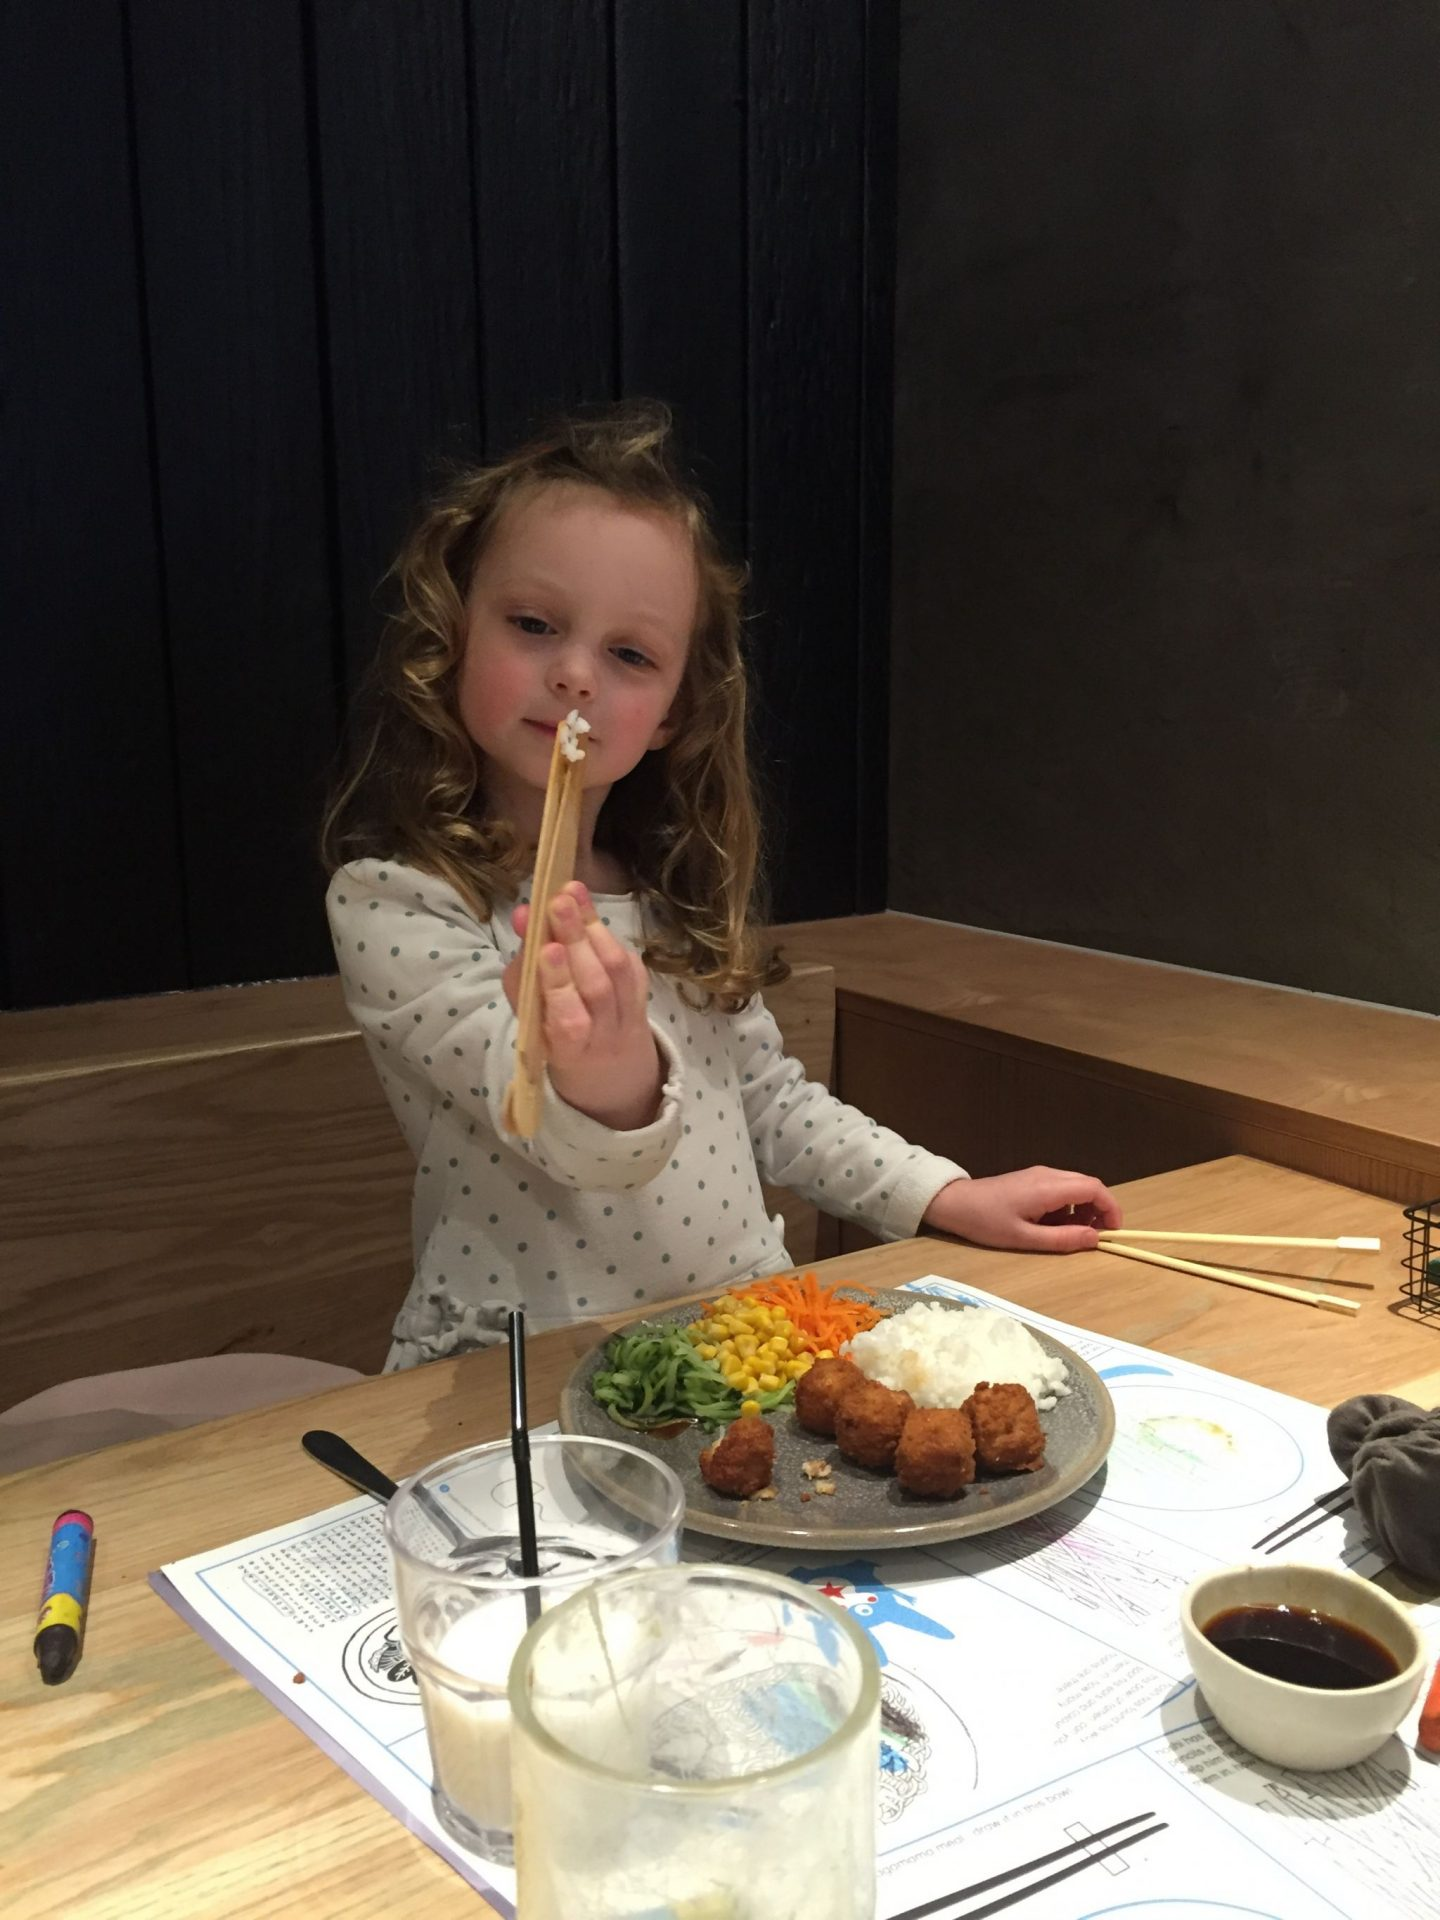 Eating Out As A Family: 9 Tips to Transform Your Experience